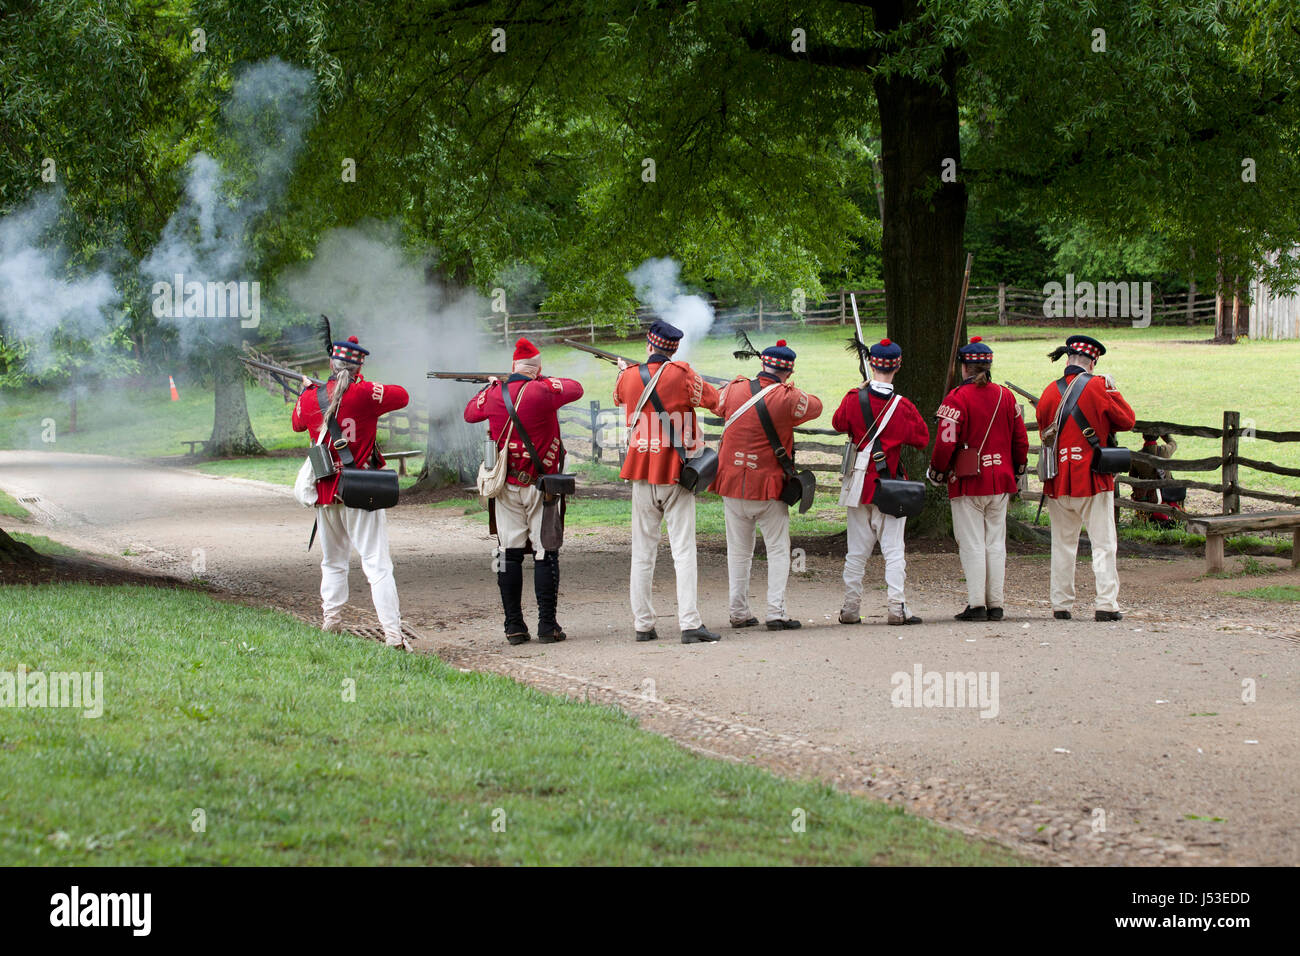 British soldiers during a reenactment of the 18th century  Revolutionary War at Mount Vernon - Virginia USA - Stock Image